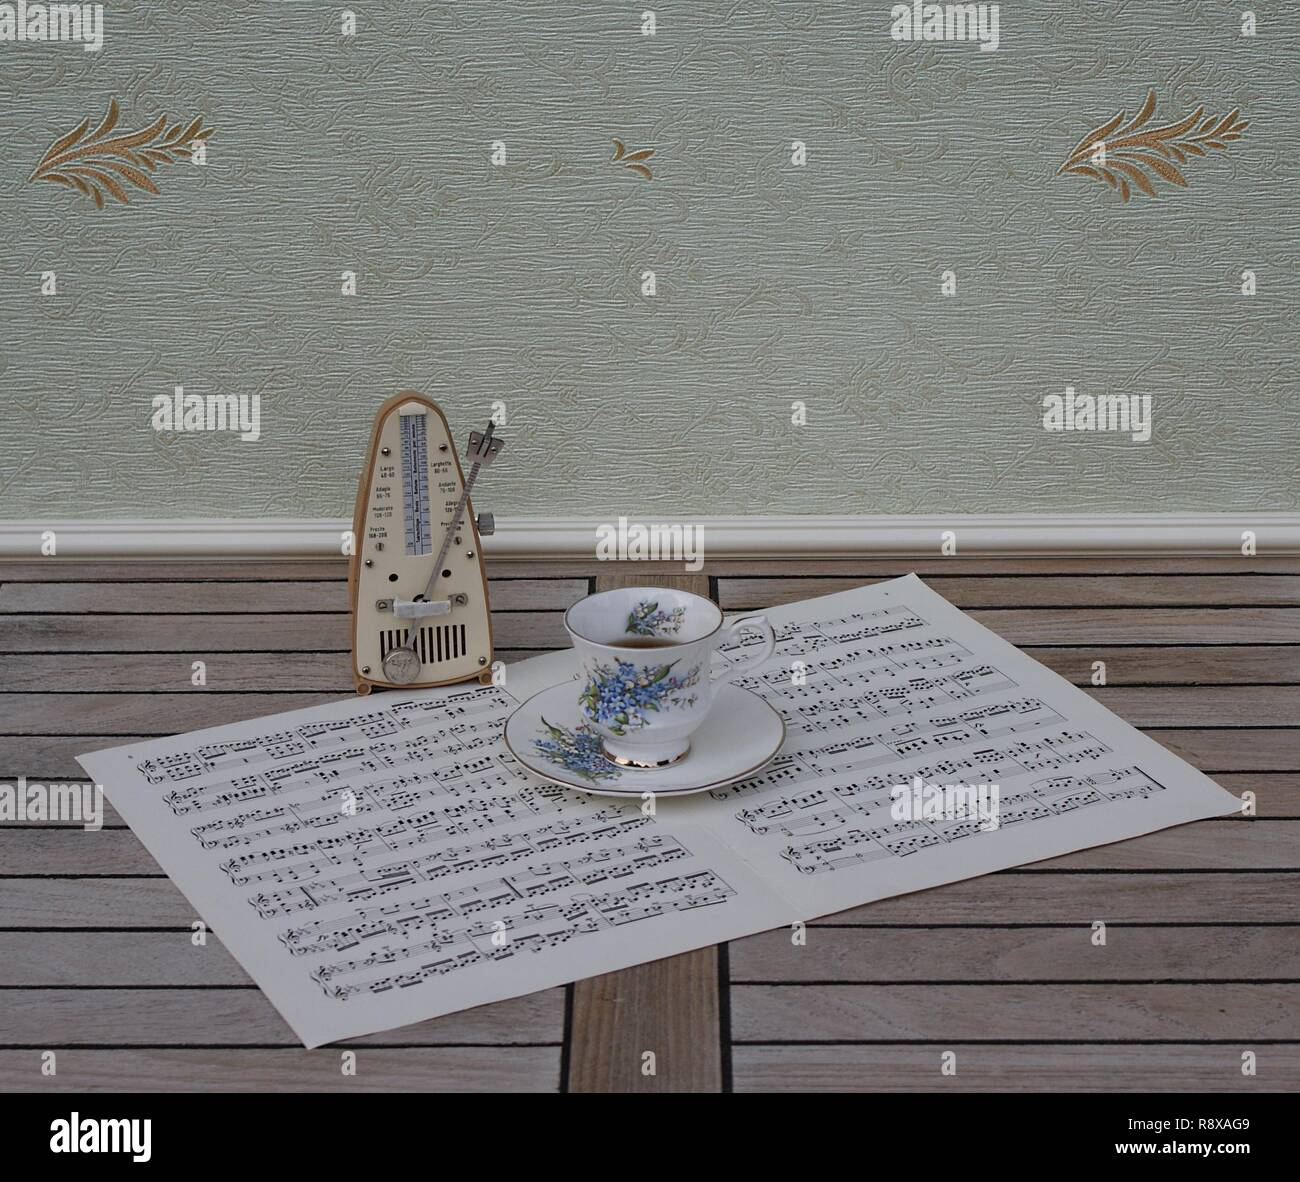 English teacup and saucer with floral decor and silver rim, and a metronome for music on a sheet of music - Stock Image